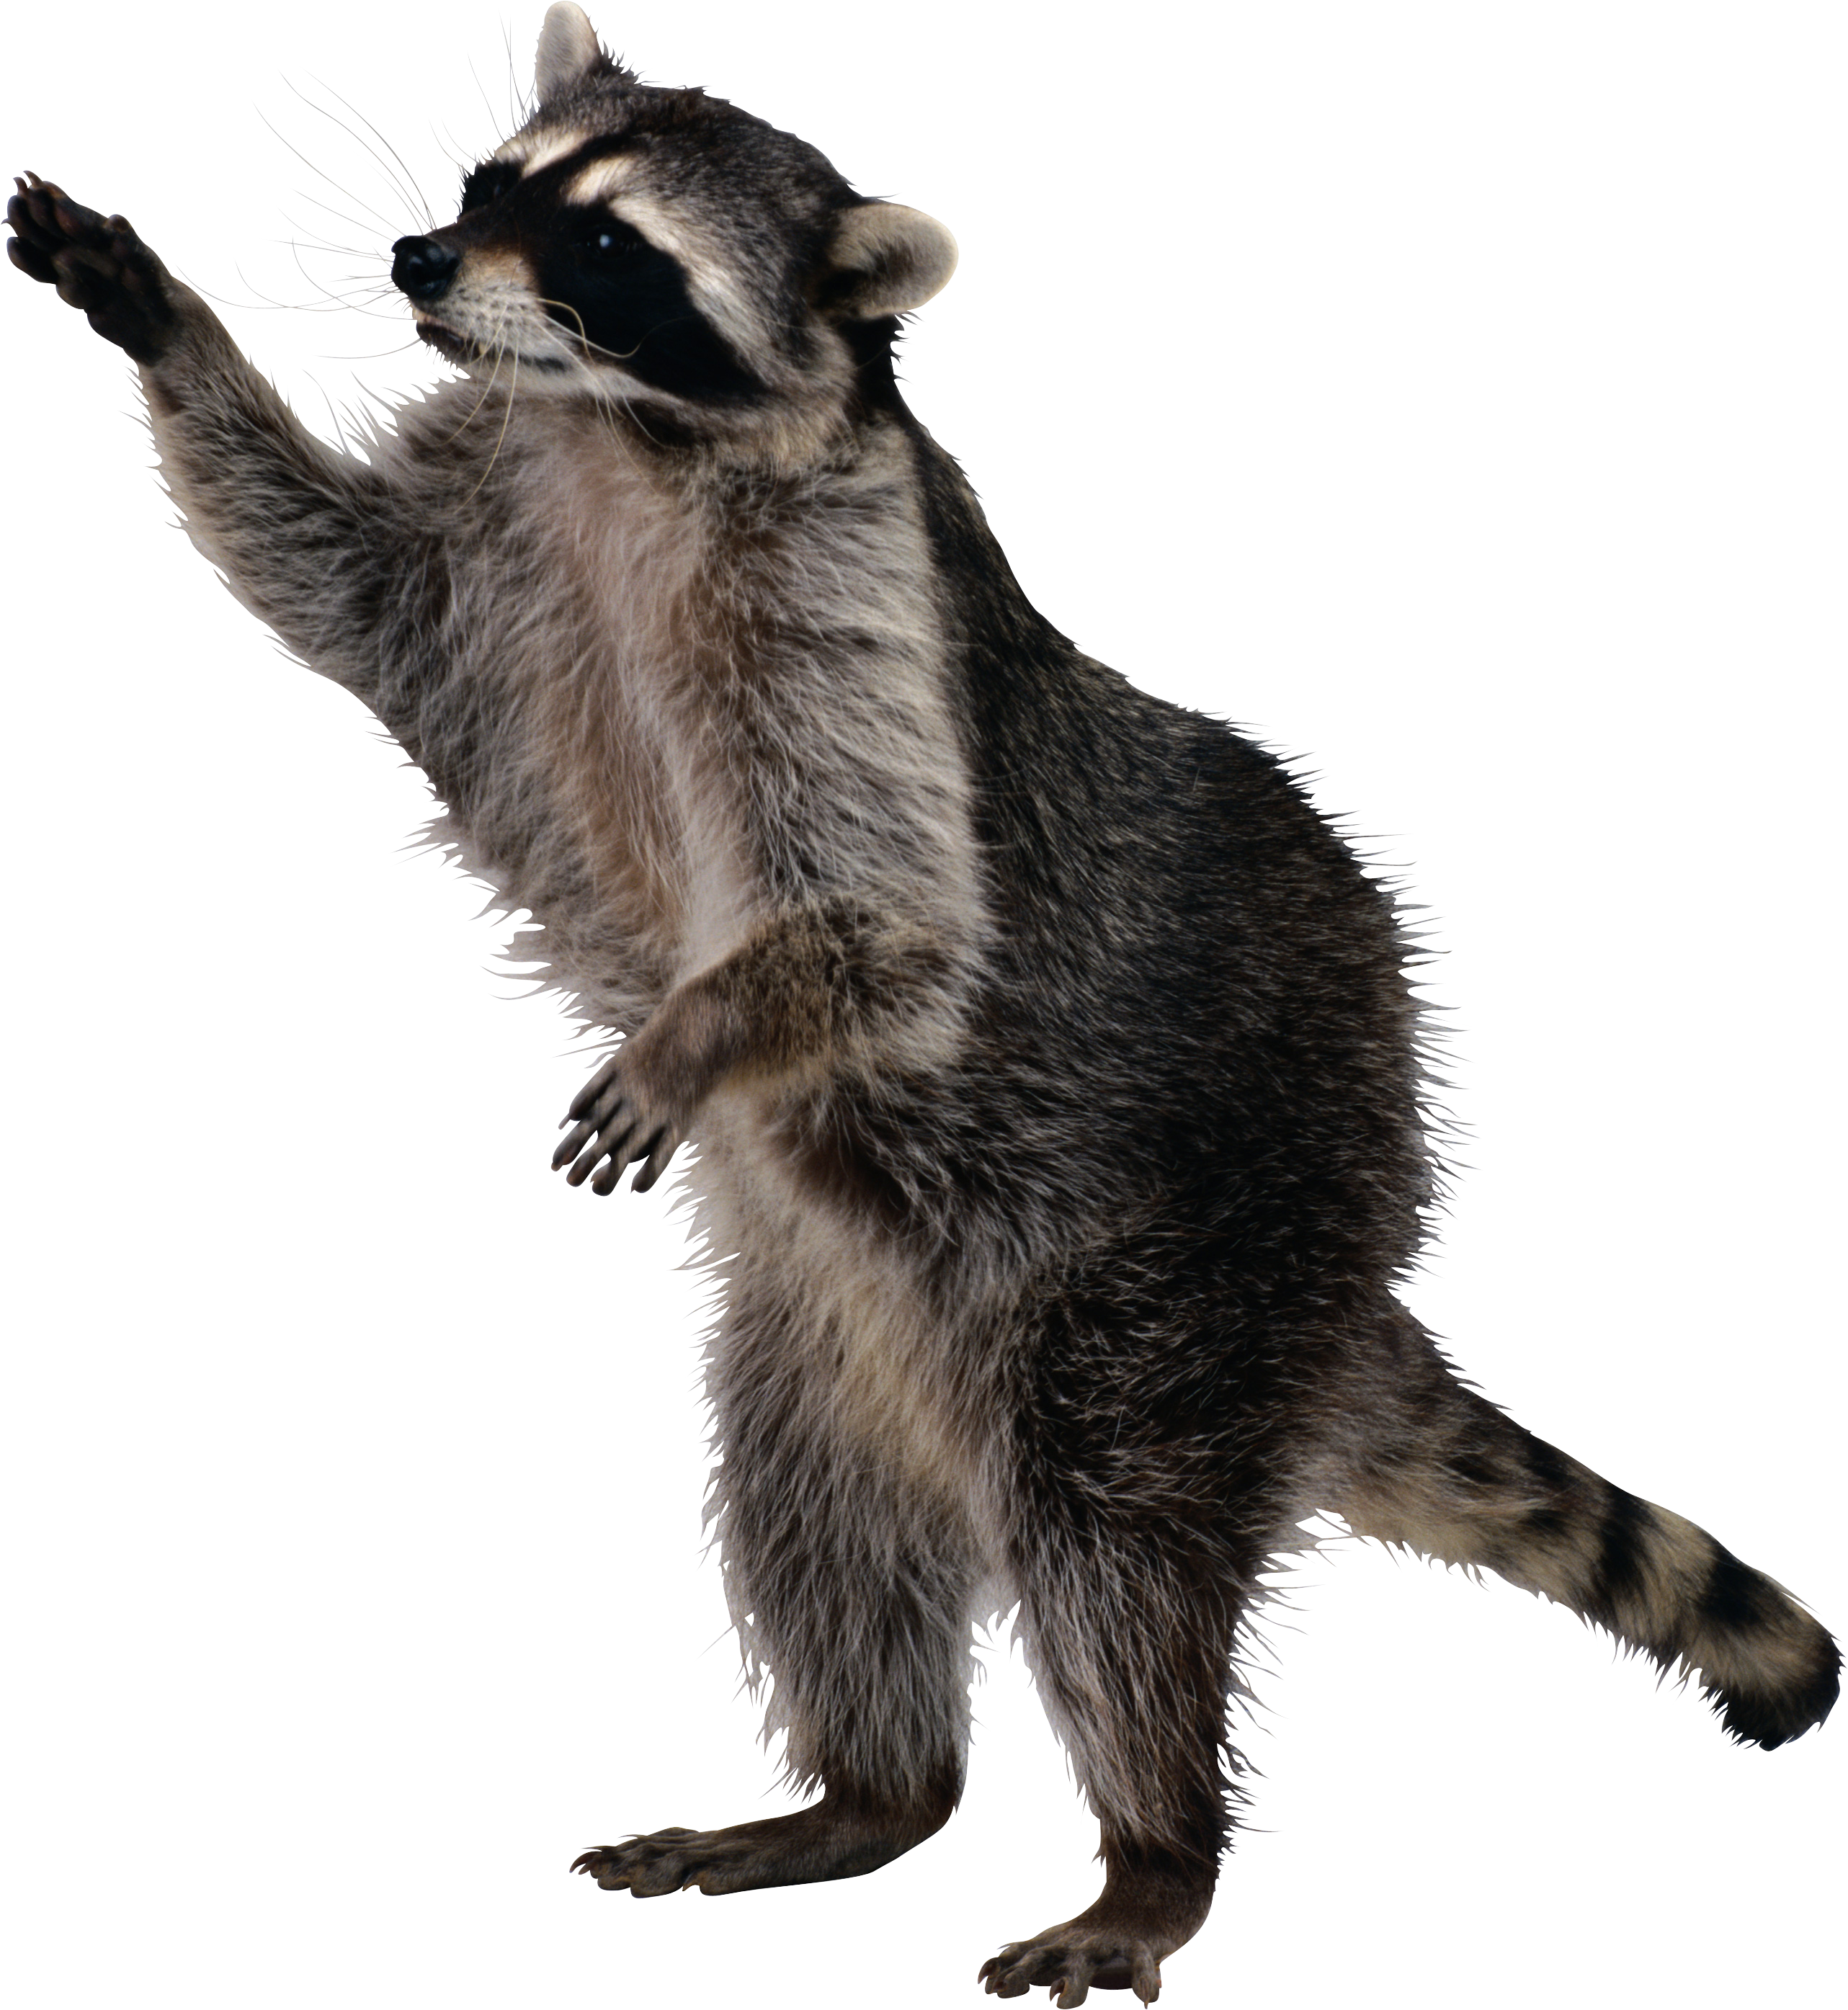 Raccoon PNG images free download.